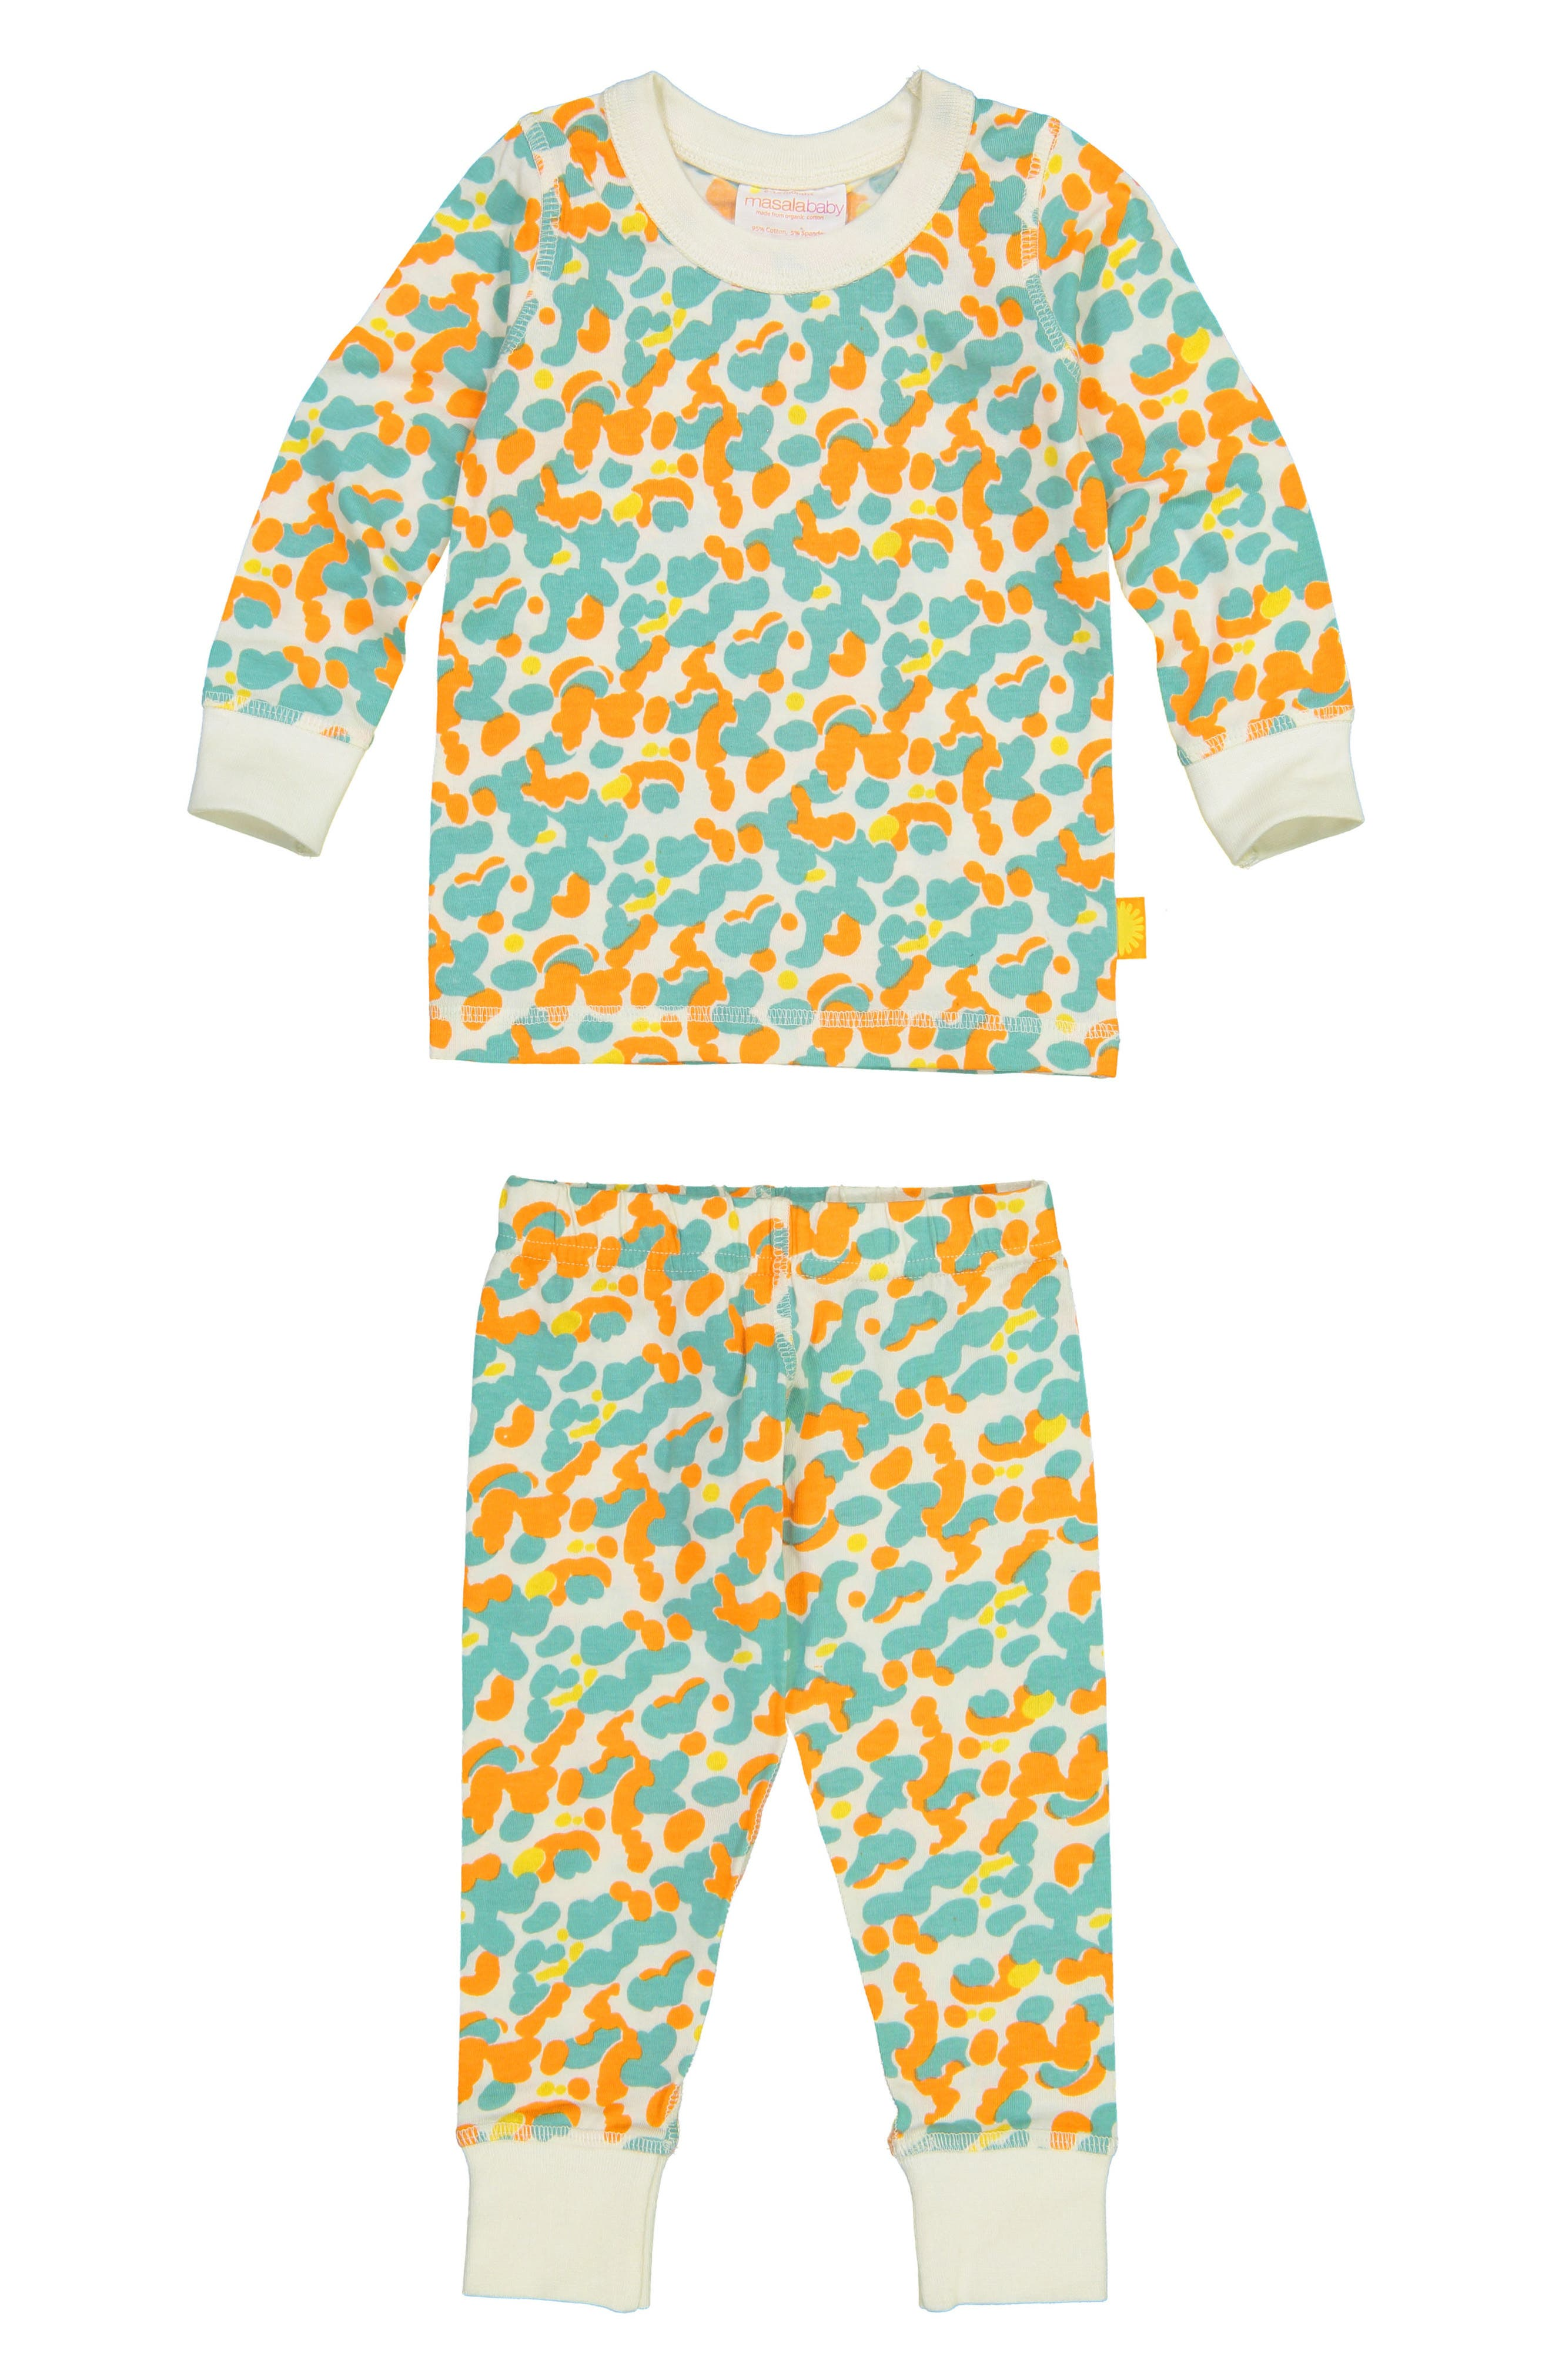 Spotted Organic Cotton Fitted Two-Piece Pajamas,                             Main thumbnail 1, color,                             424